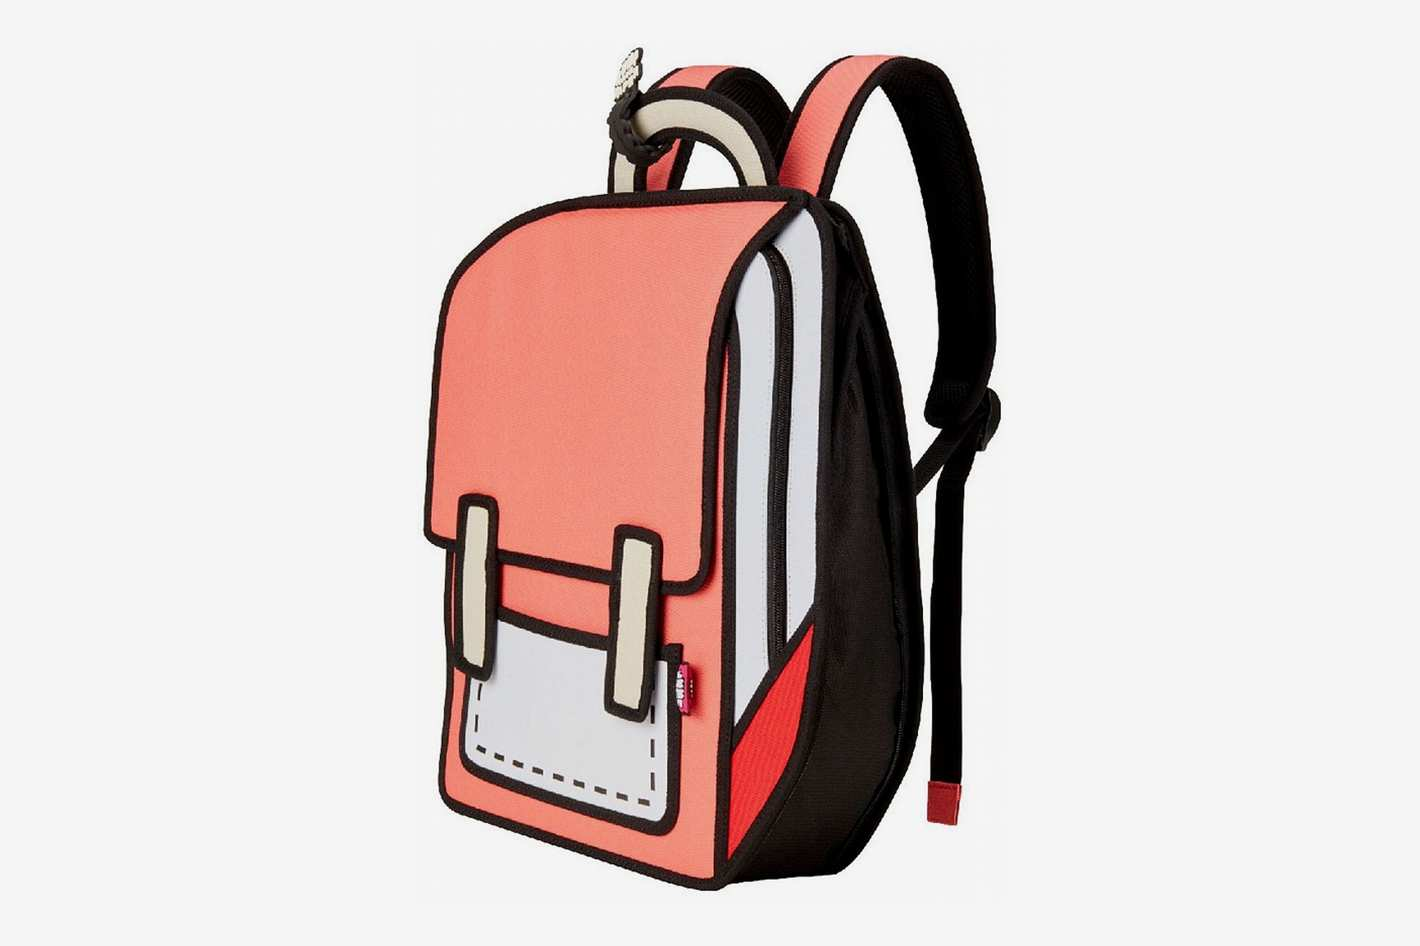 JumpFromPaper Fun and Playful 2D Backpack